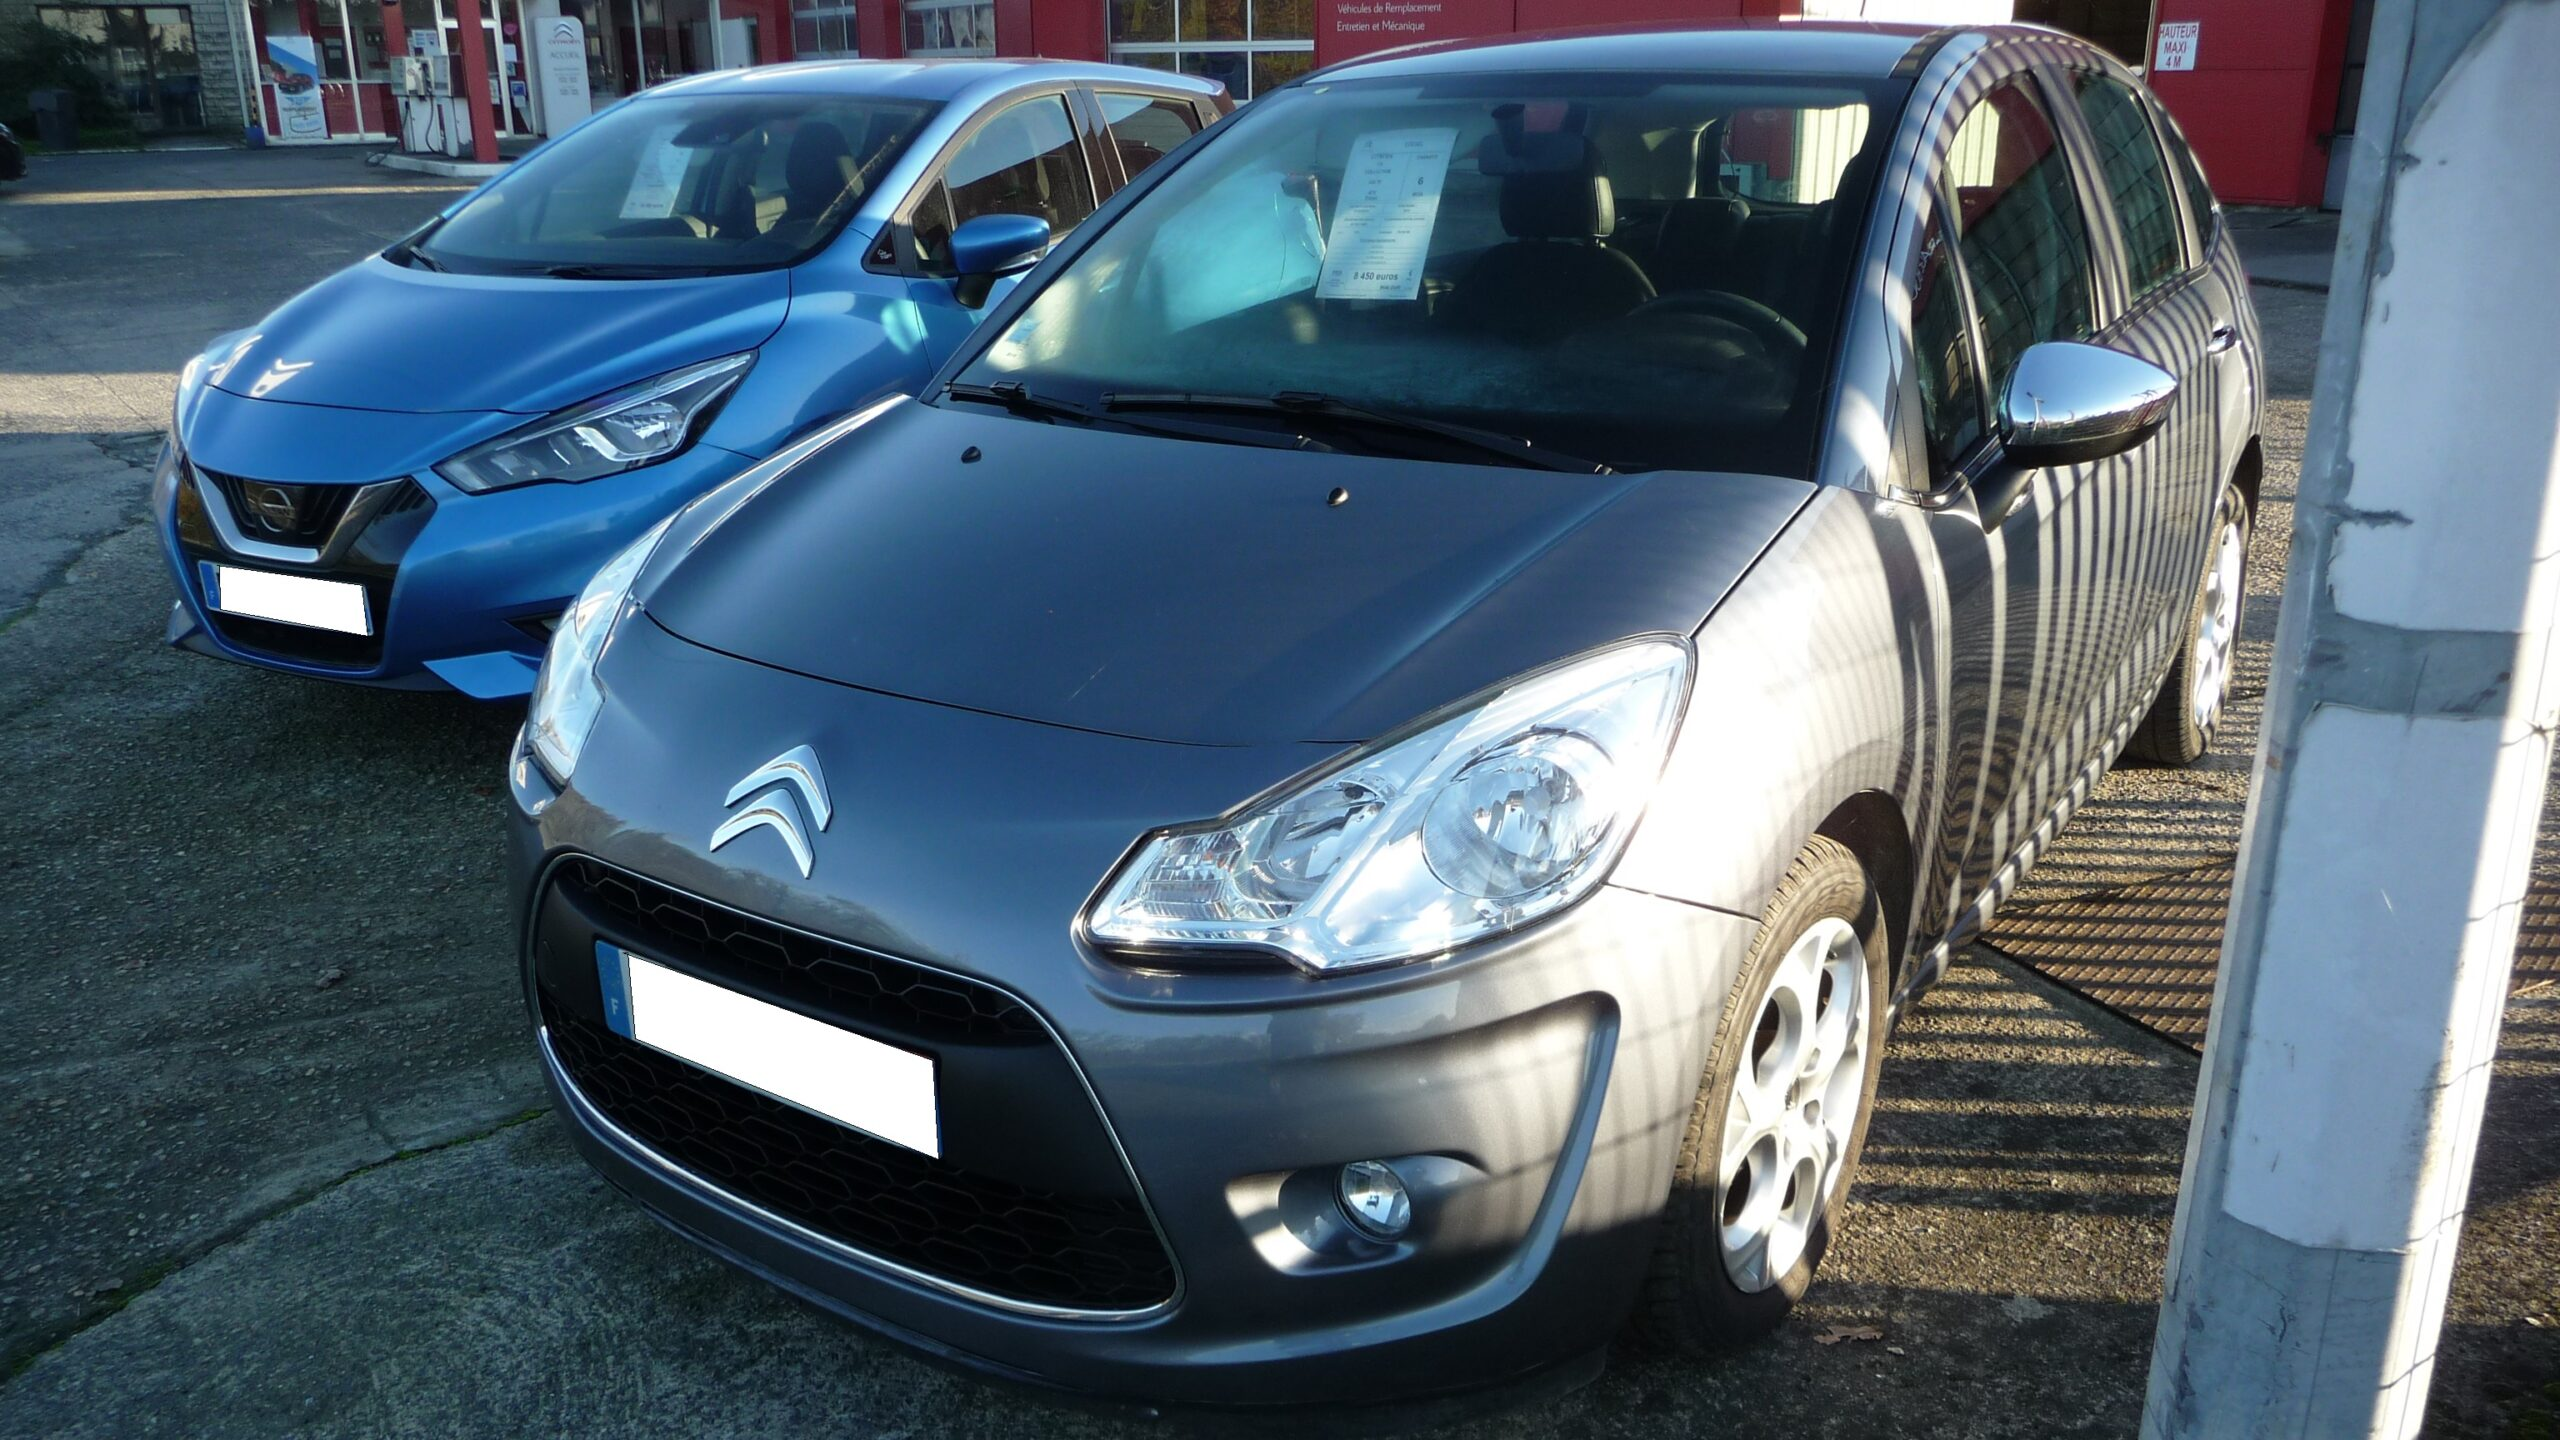 N°8707  CITROEN C3 II 1.4 HDI 70 cv Collection